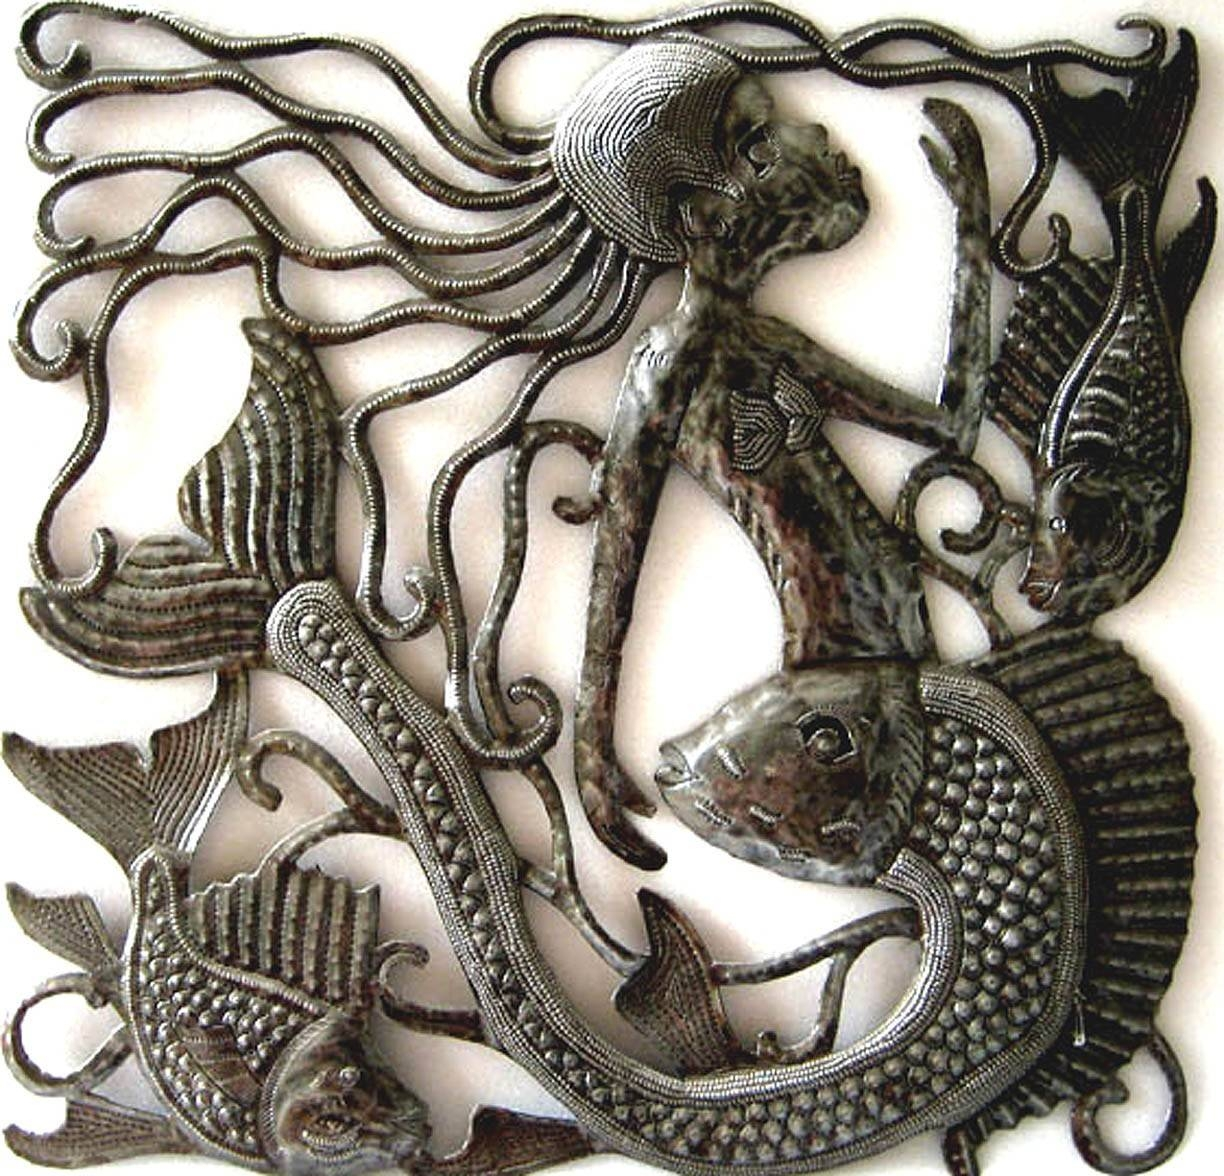 Metal Wall Art Home Decor Metal Mermaid Wall Hanging Intended For Most Recent Mermaid Metal Wall Art (View 16 of 20)